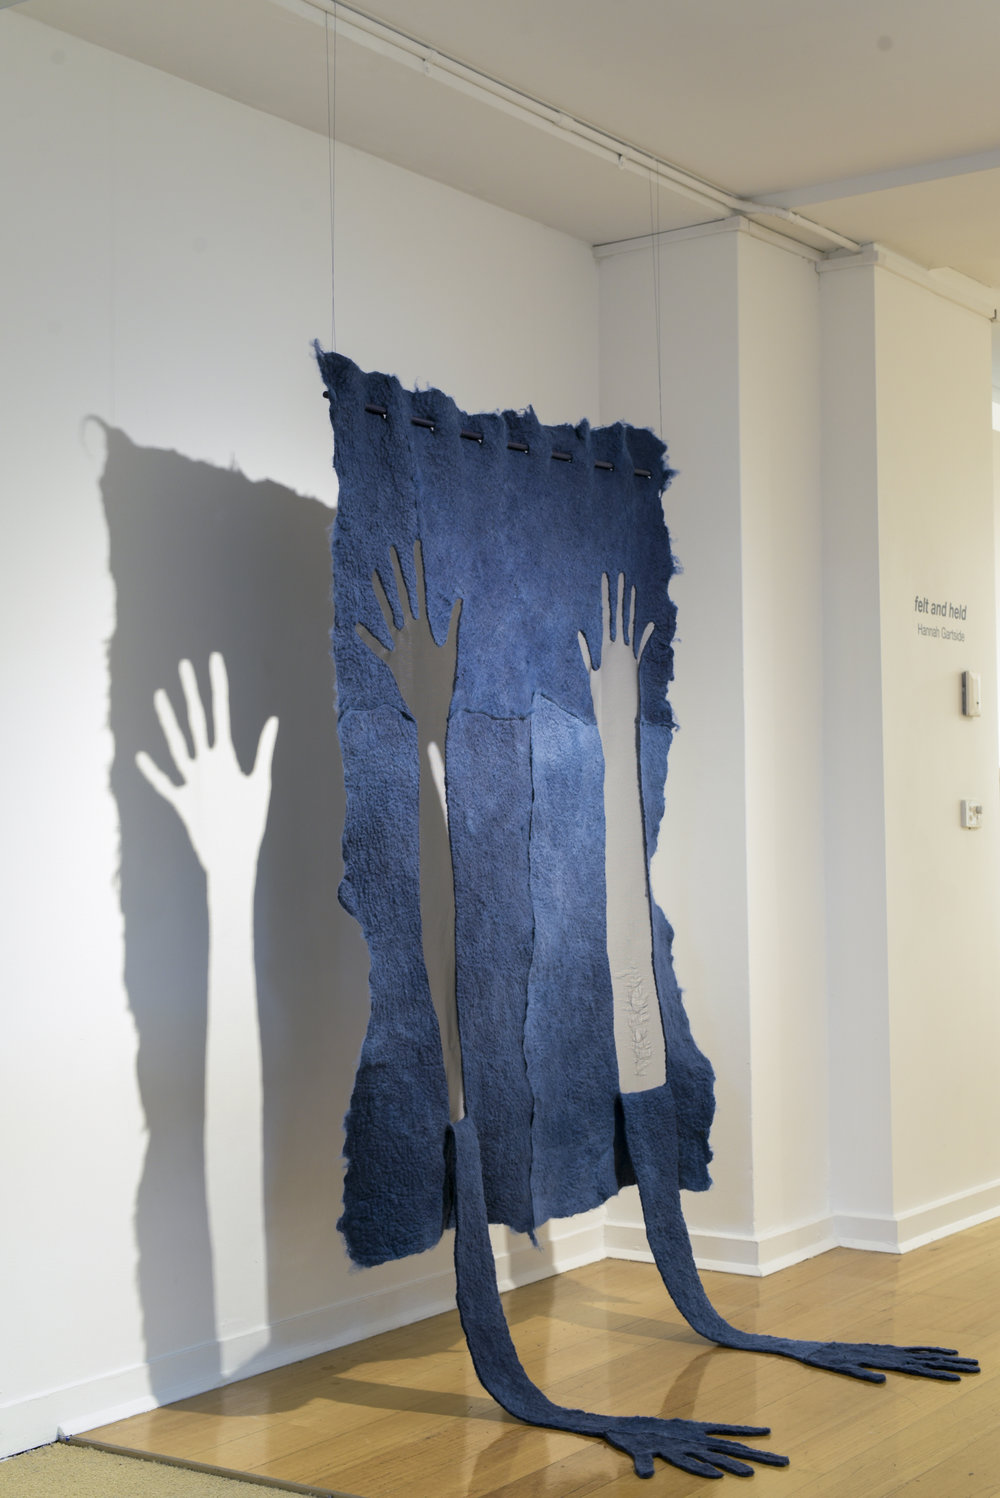 Exultation/ Desperation,  2016, indigo-dyed wet-felted sheep's fleece, found fly net, thread, dowel. H 180cm x w 120cm x D 60cm